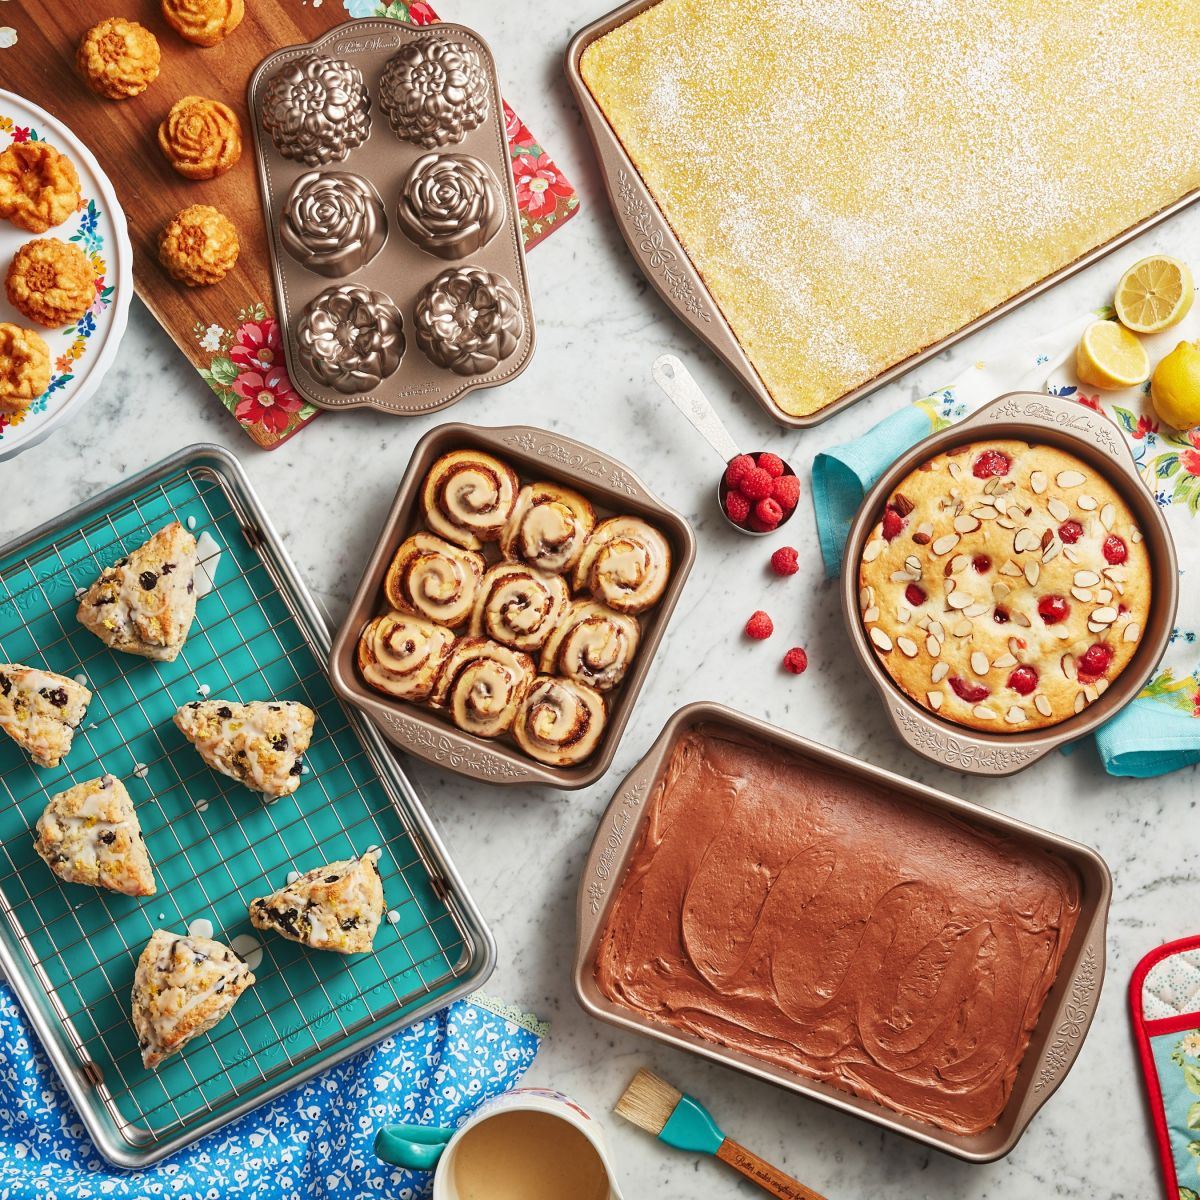 The Pioneer Woman just dropped brand-new bakeware, and we need these 5 items